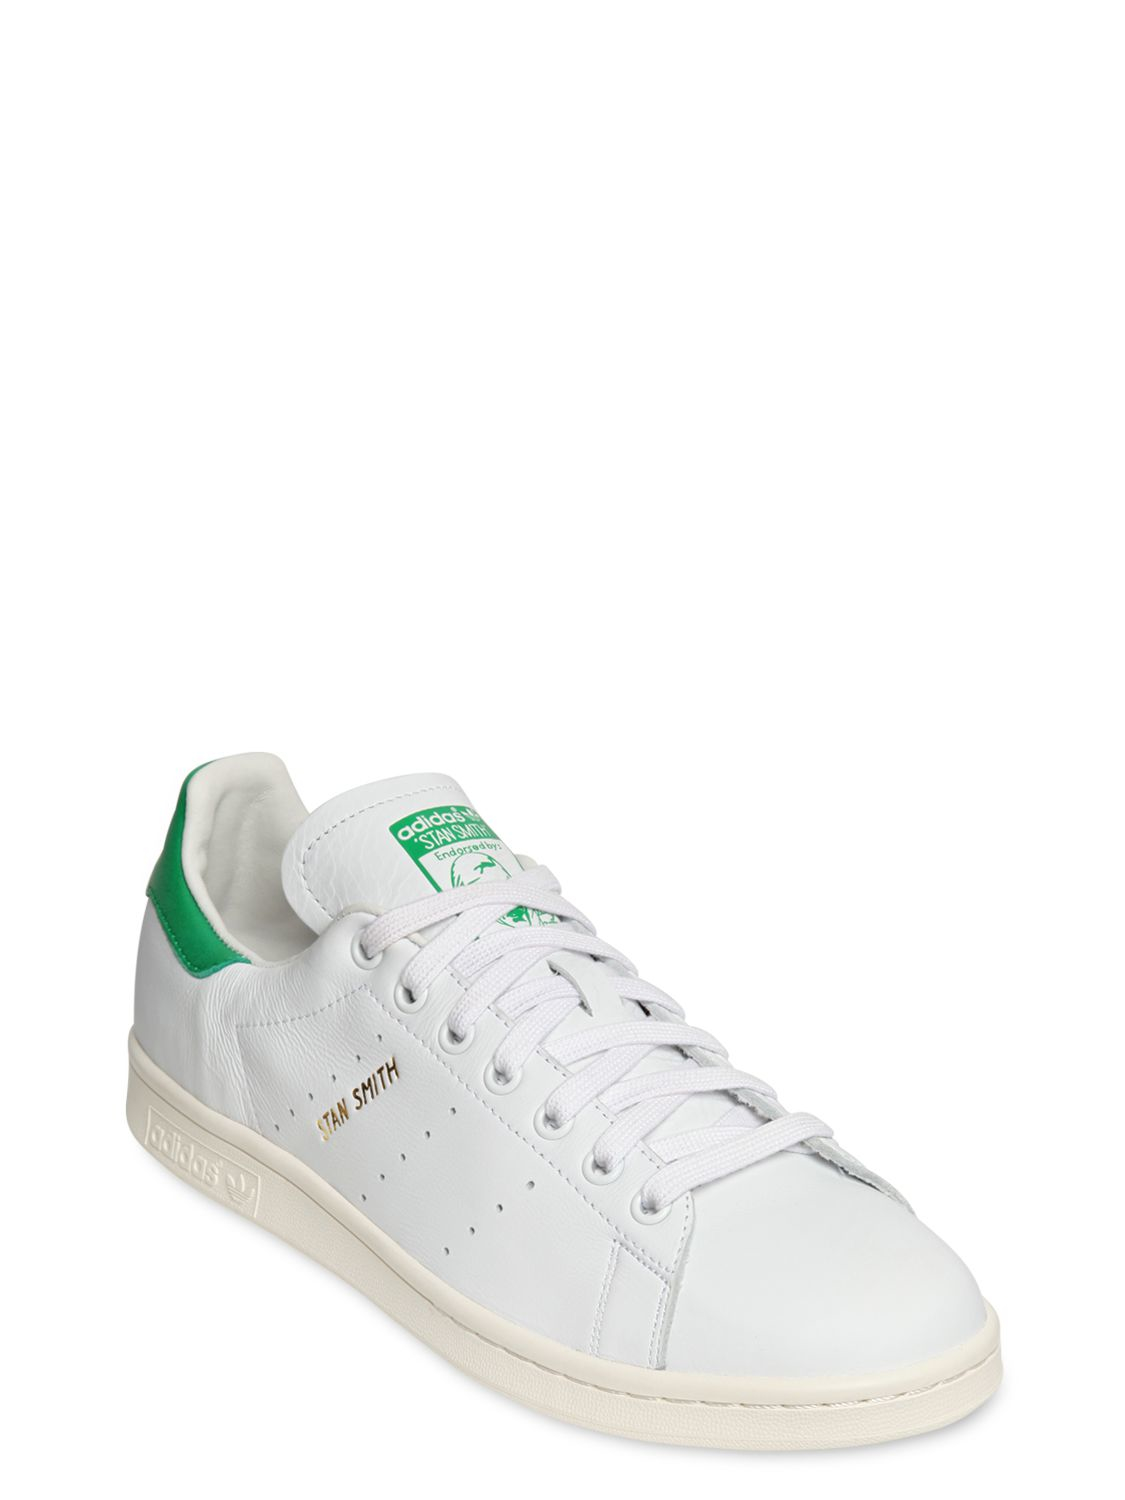 lyst adidas stan smith basket weave green in white for men. Black Bedroom Furniture Sets. Home Design Ideas